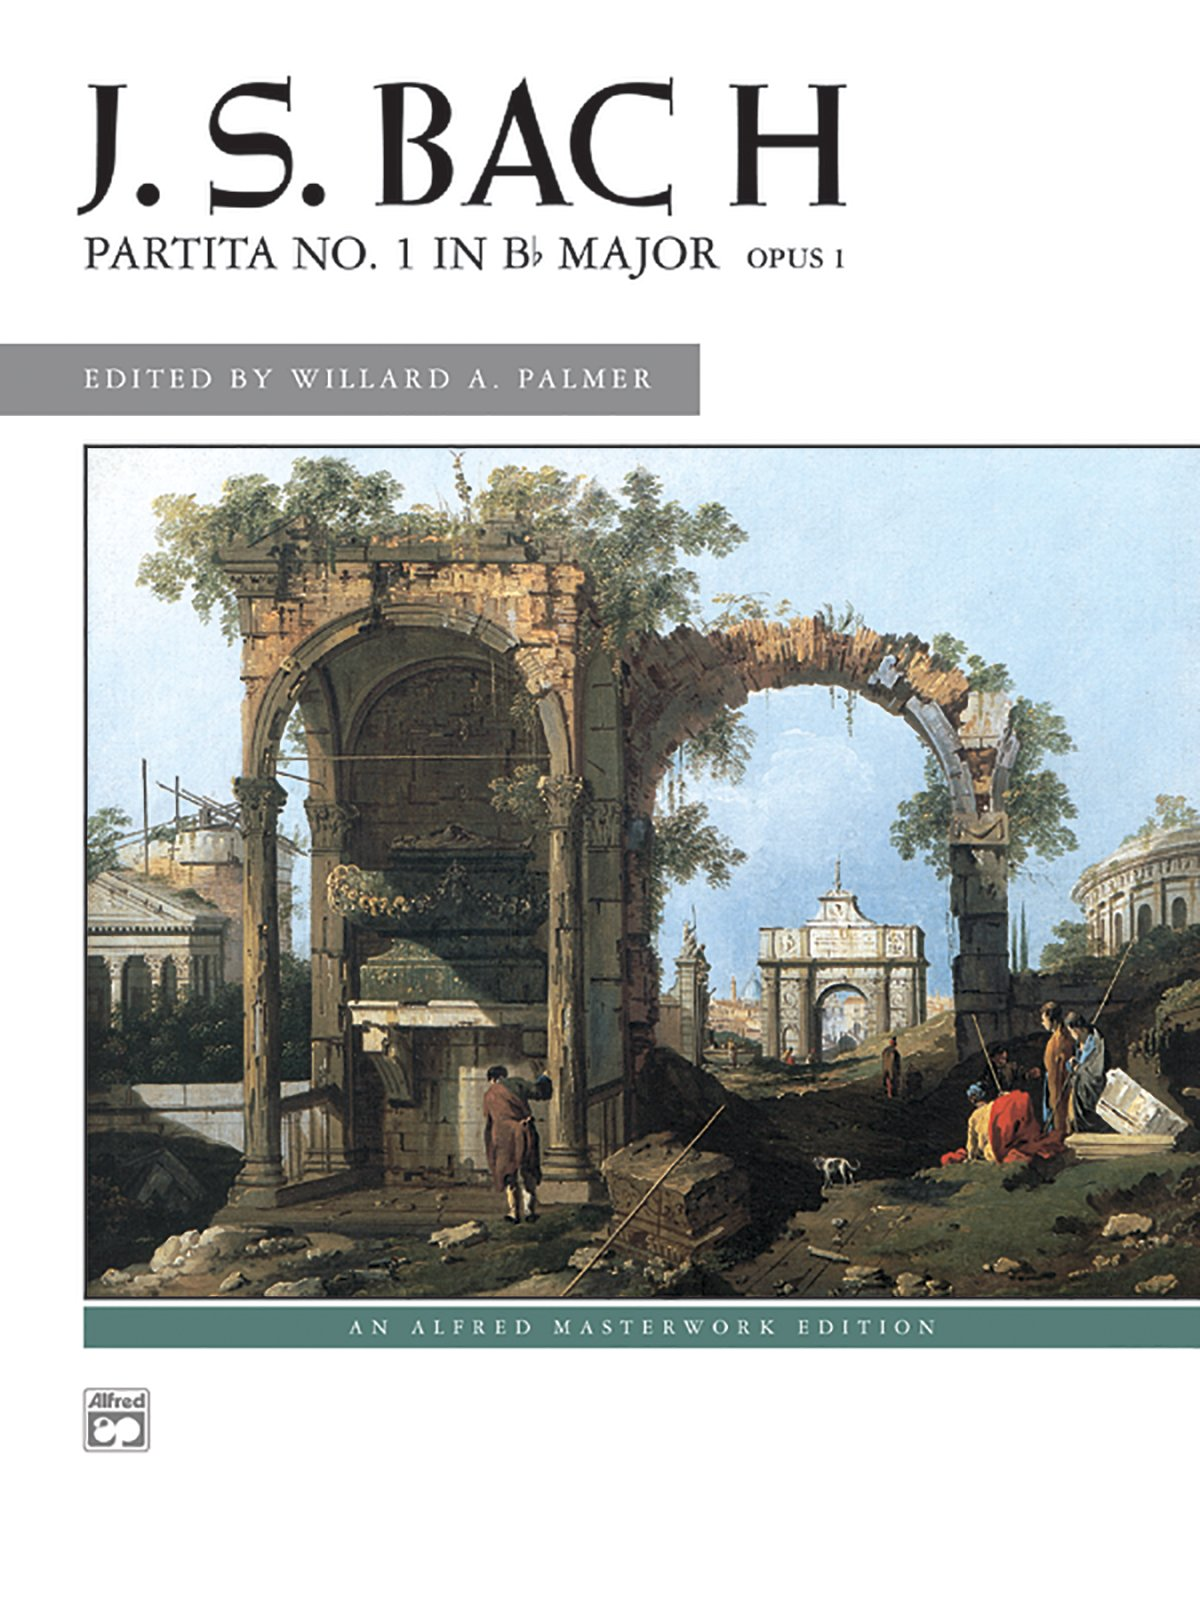 Partita No. 1 in B-flat Major, Op. 1 (Alfred Masterwork Edition): Johann  Sebastian Bach, Willard A. Palmer: 9780739008324: Amazon.com: Books